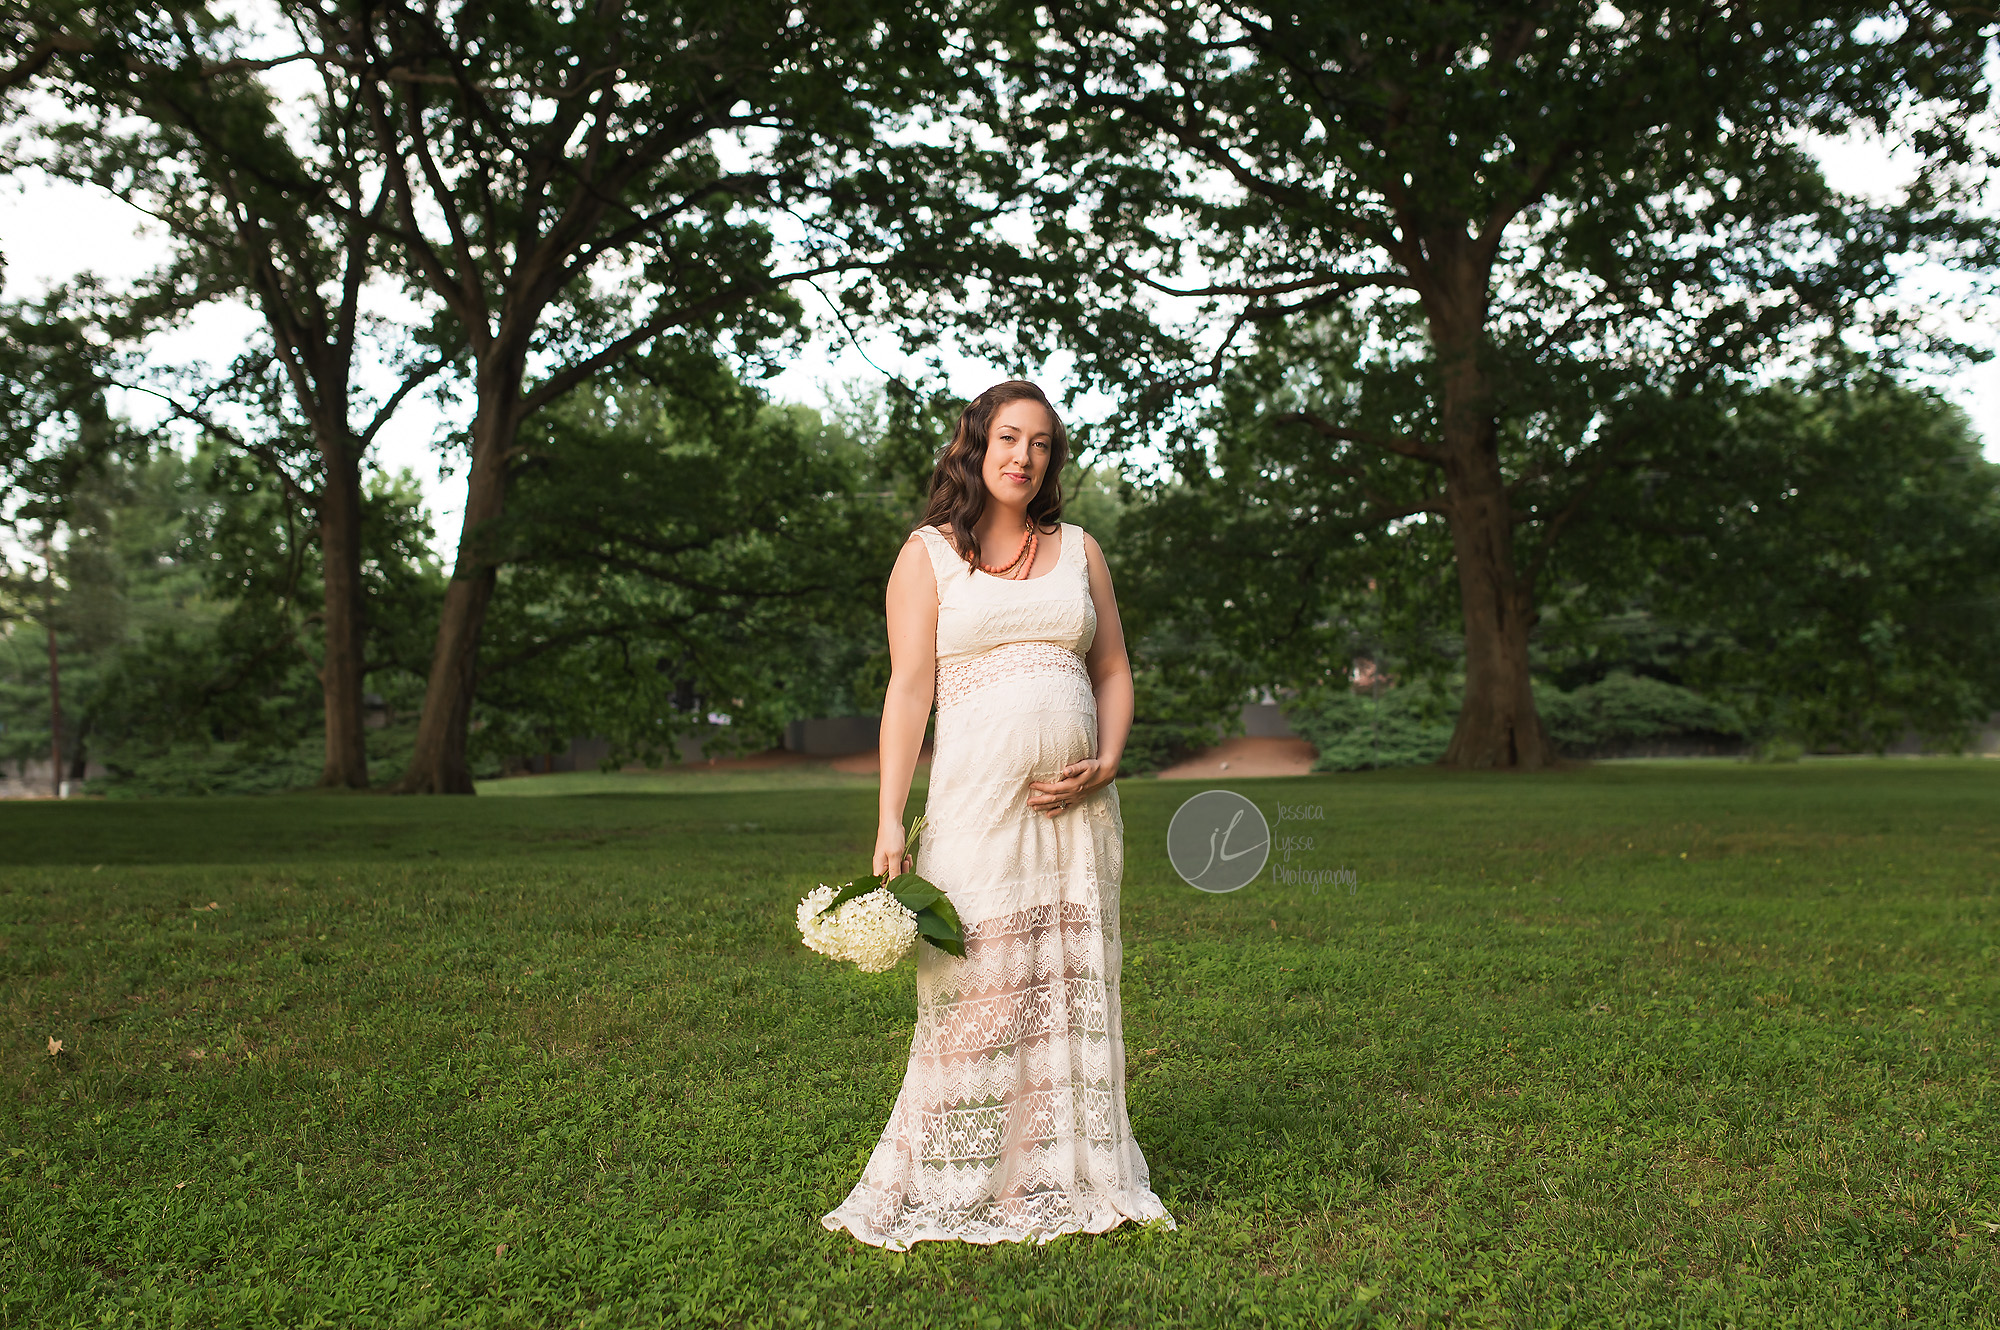 pregnant photos with huge trees